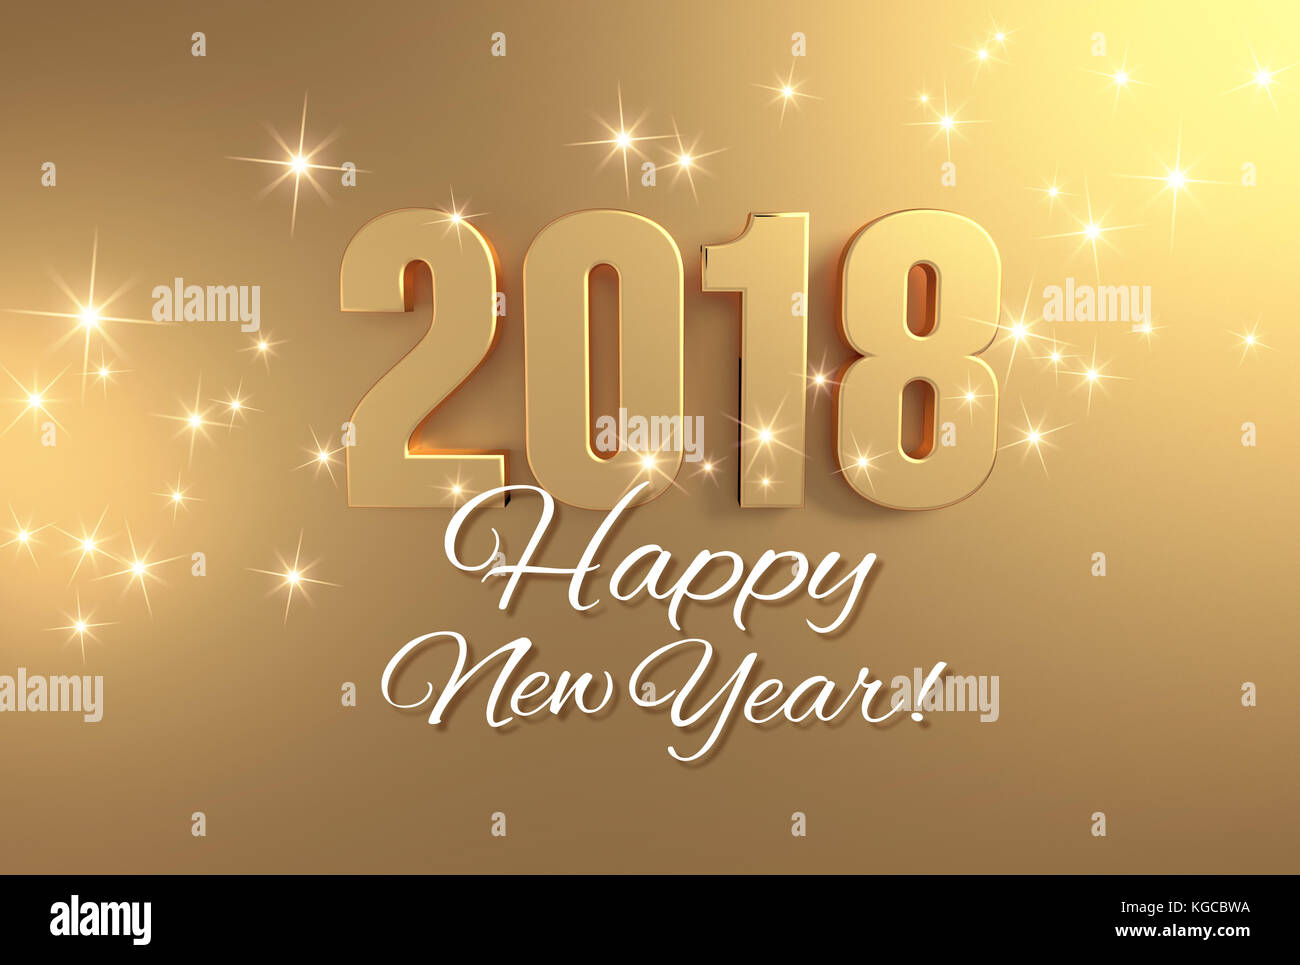 New Year Greetings Stock Photos New Year Greetings Stock Images